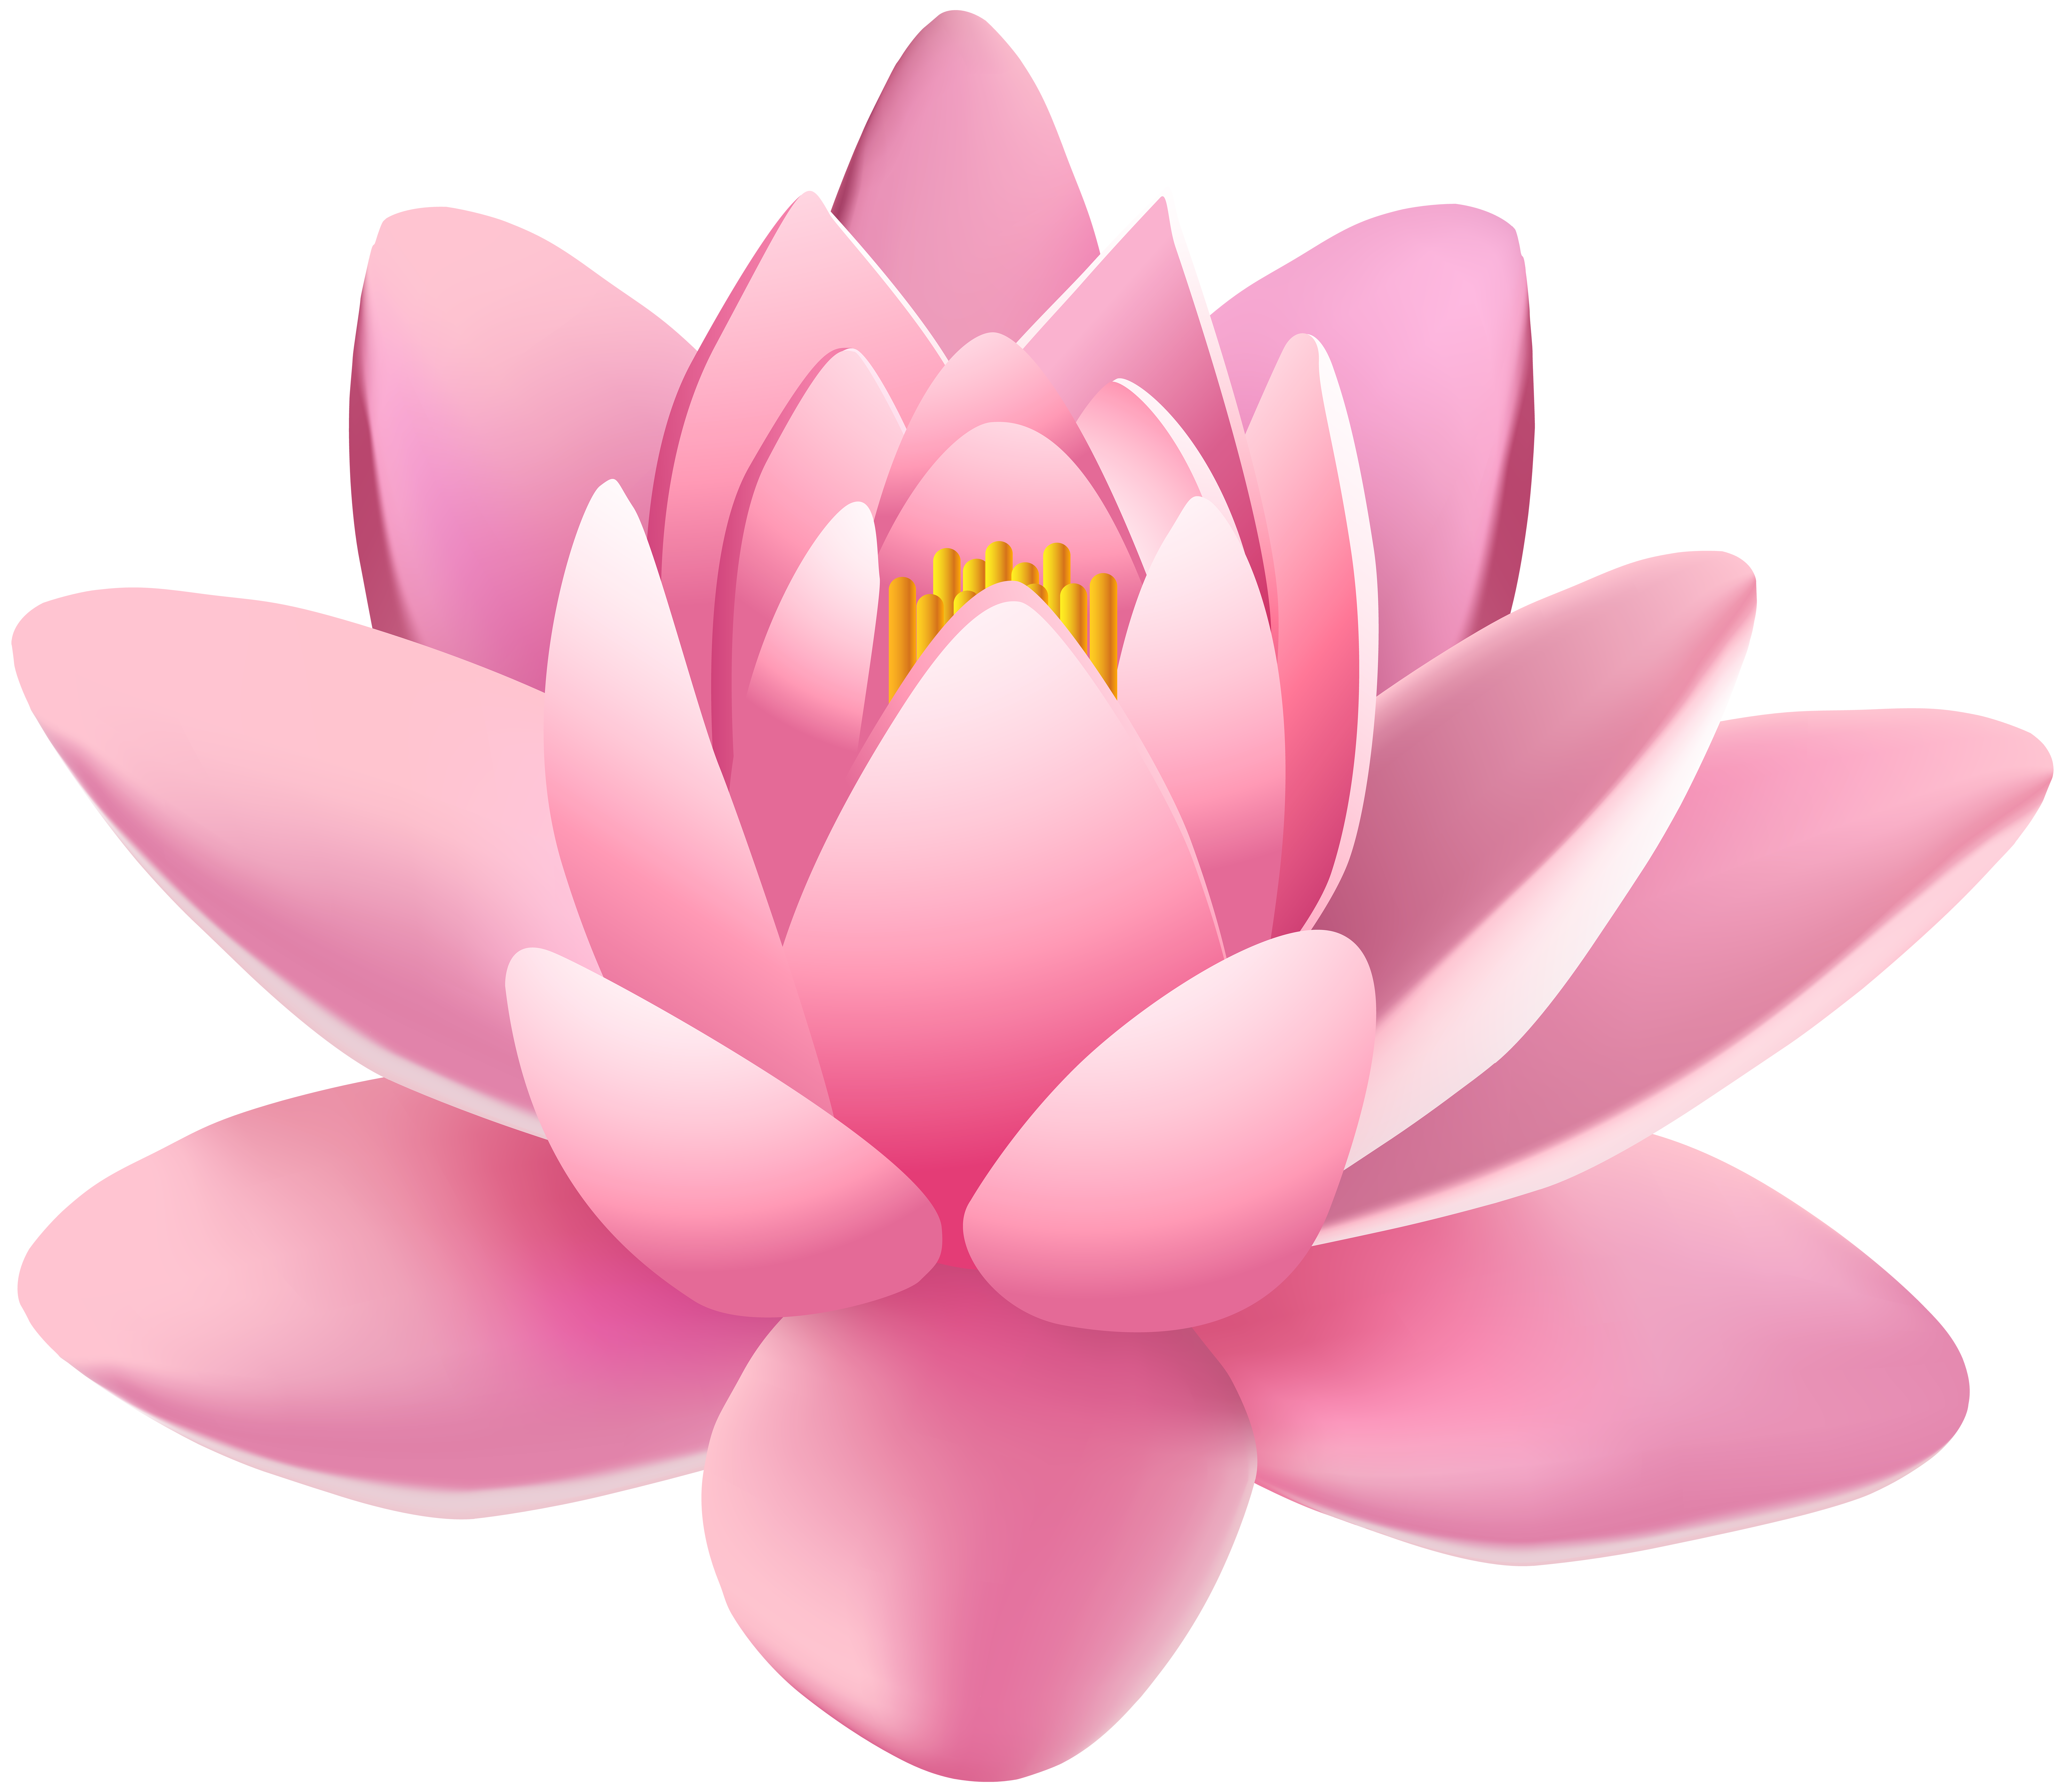 Water lily flower clipart png royalty free stock Pink Lily Flower PNG Clip Art Image | Gallery Yopriceville - High ... png royalty free stock